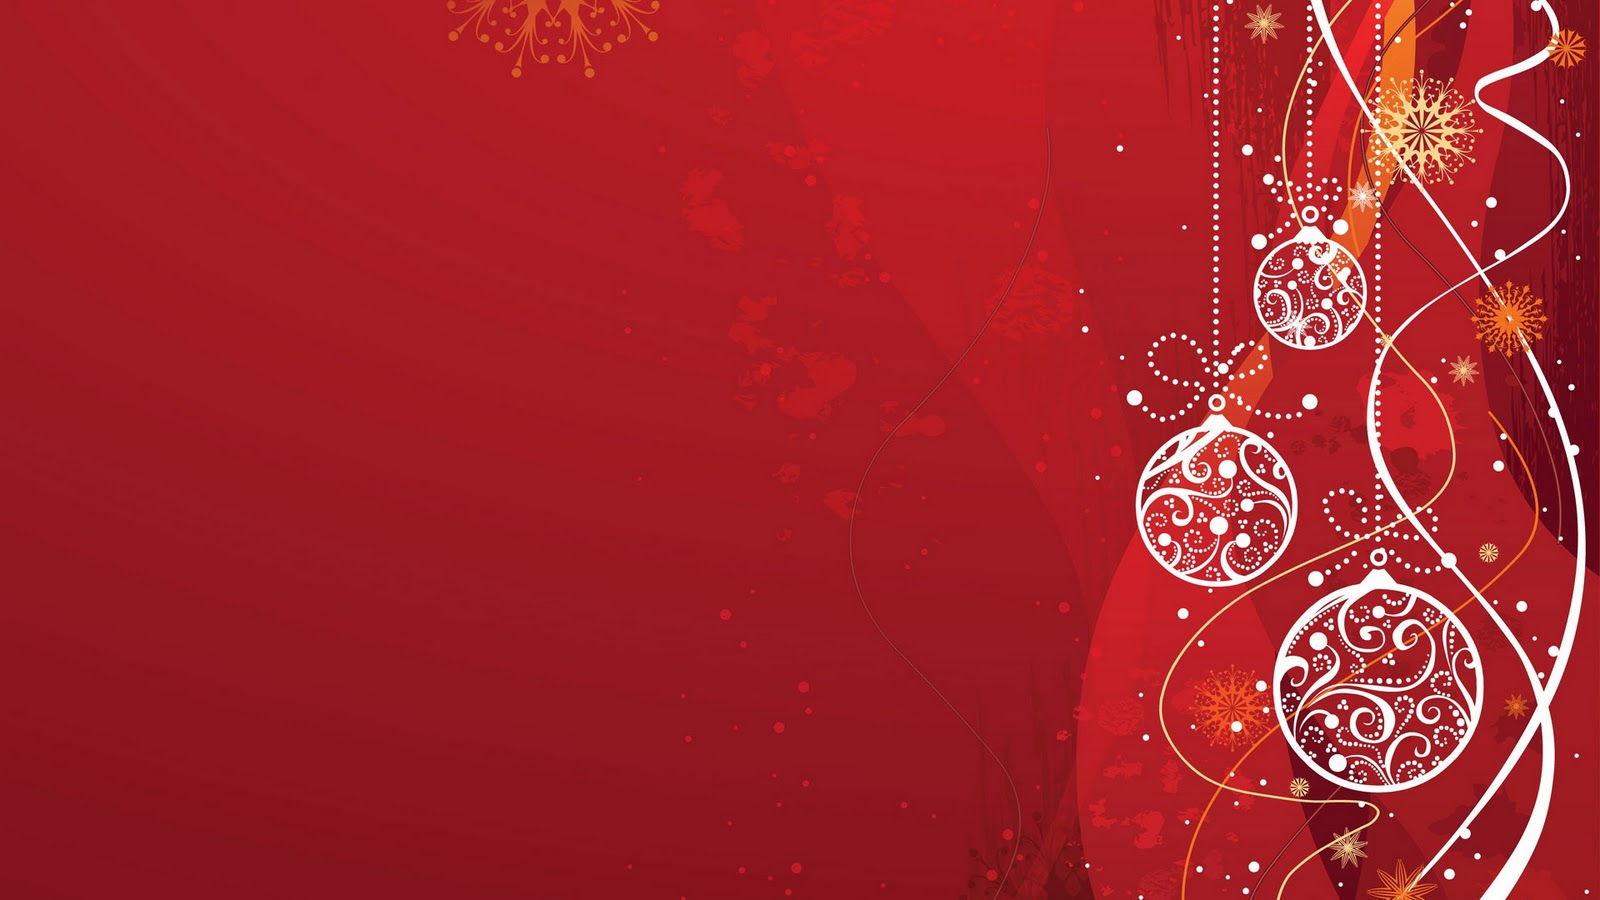 Christmas Background - PowerPoint Backgrounds for Free PowerPoint ...